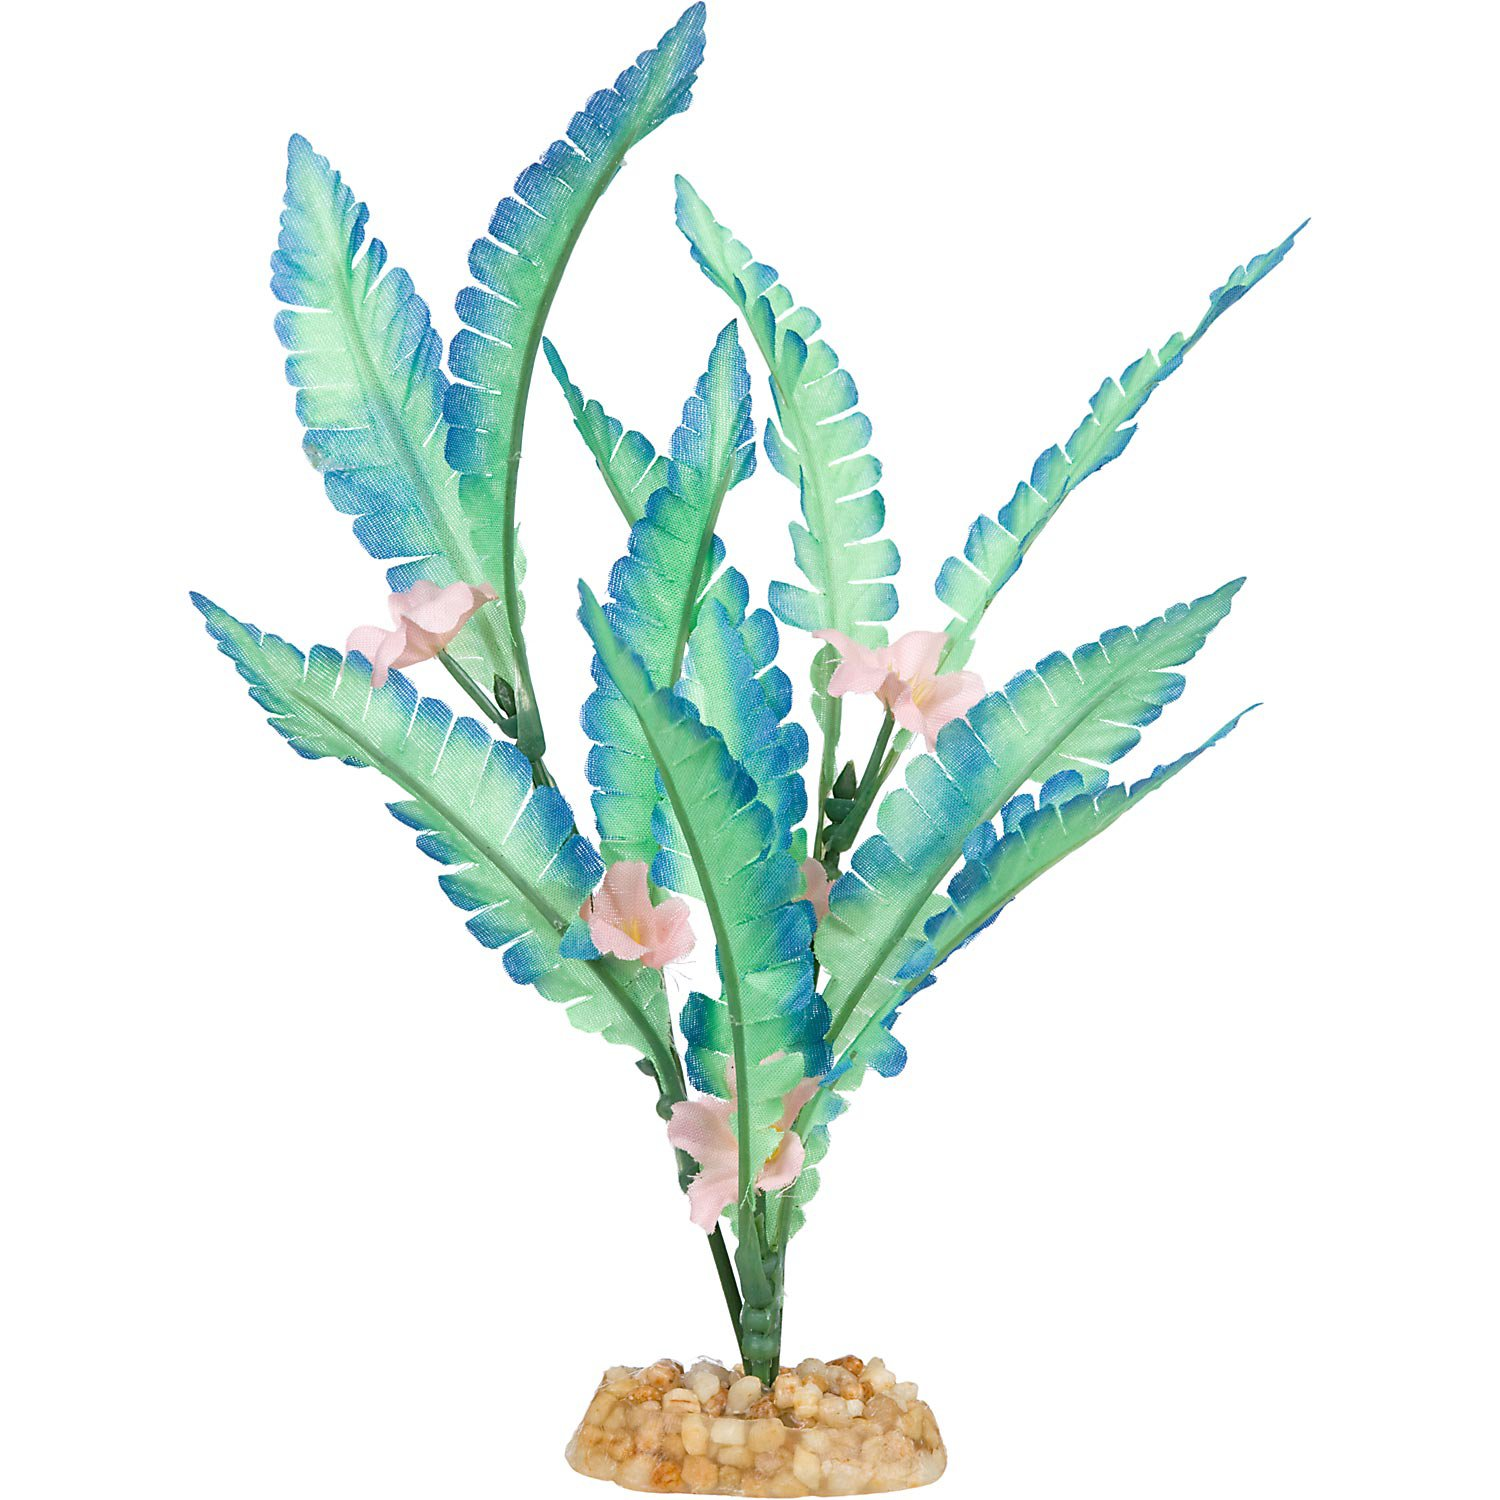 Petco Aqua Bloom Silk Aquarium Plant | Petco Store